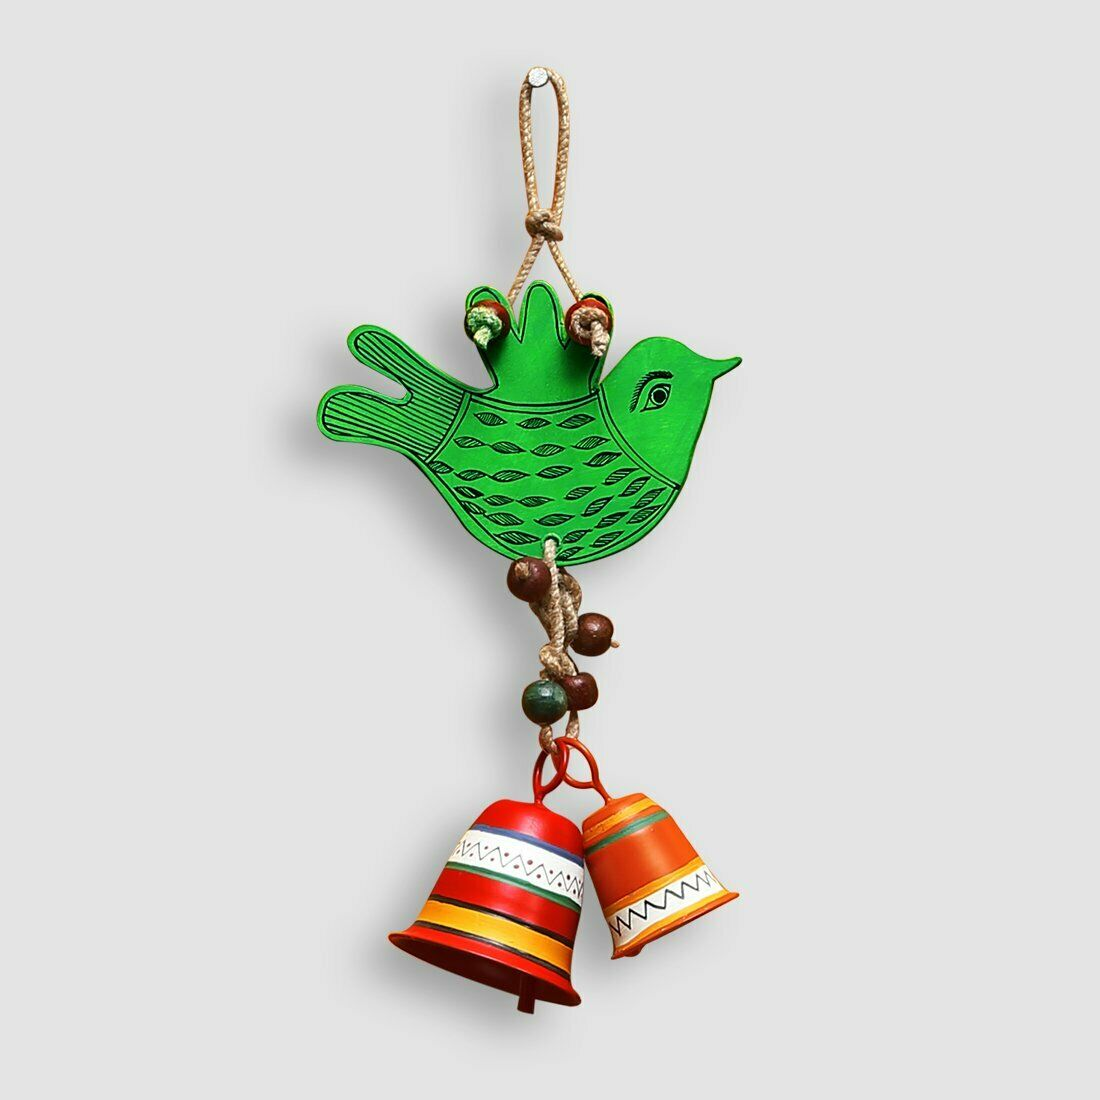 Wind Chime The Singing Bird' Hand-Painted Decorative Hanging In Wood & Metal